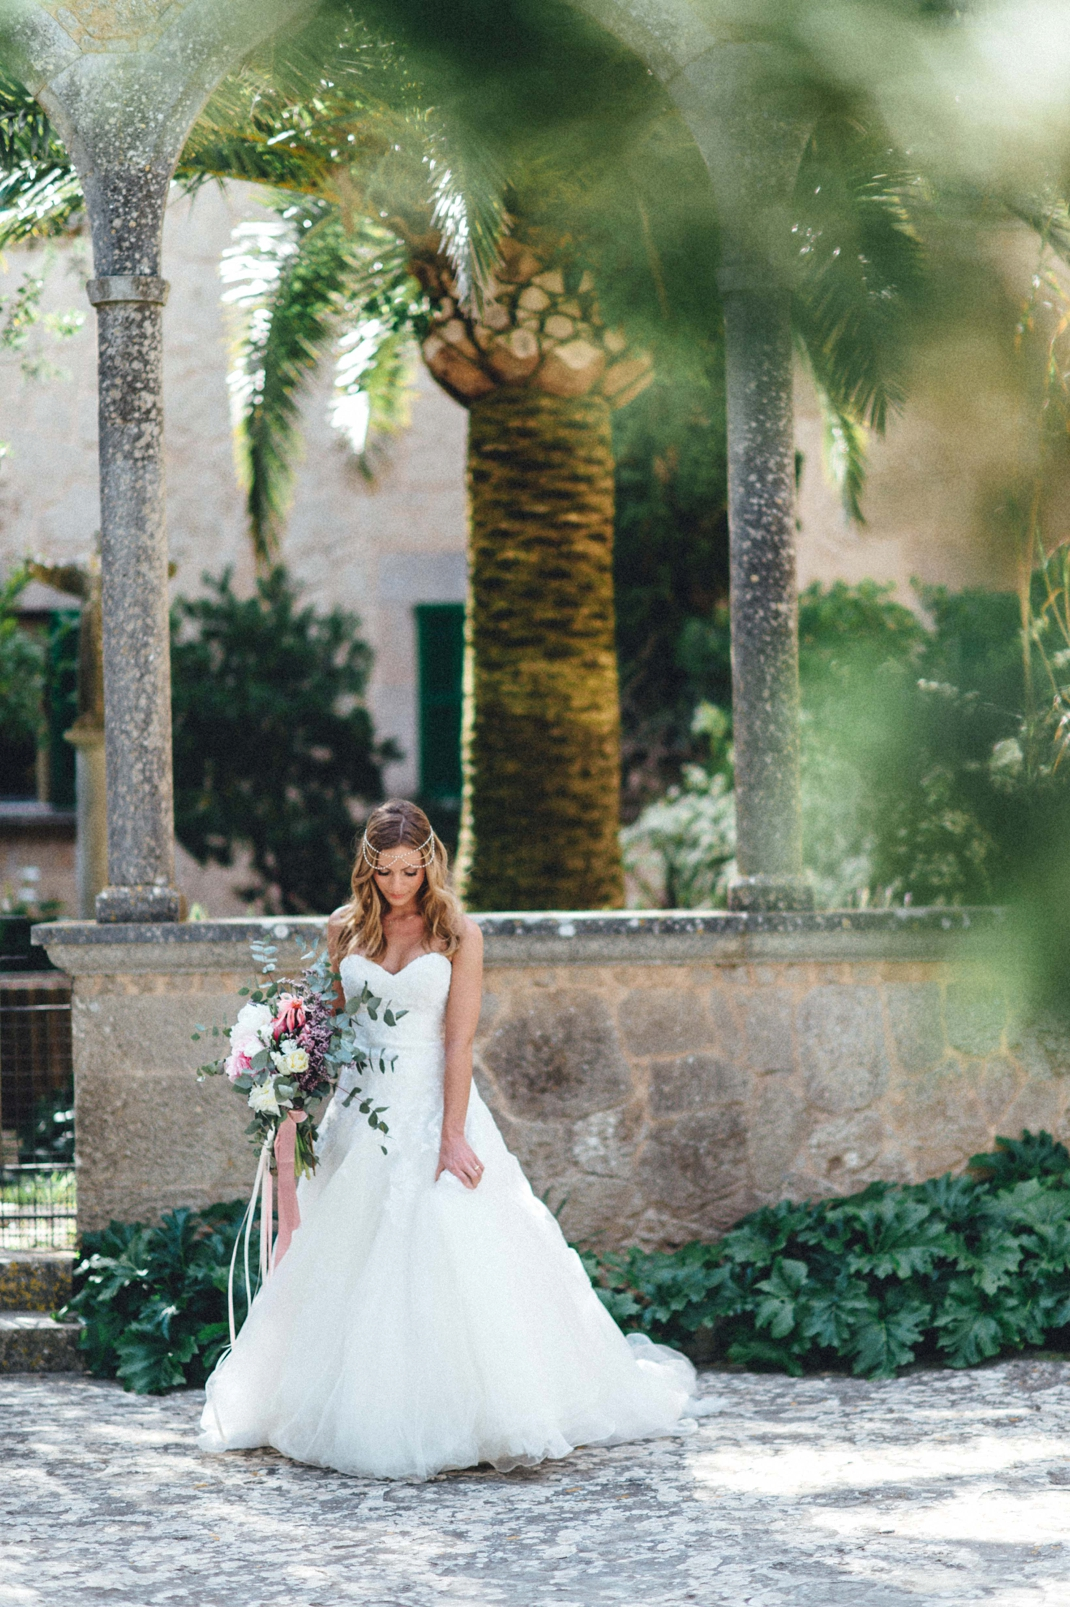 after-wedding-mallorca-shooting-hochzeit_0947 after wedding shooting mallorca hochzeitsfotografAfter Wedding Shooting auf Mallorcaafter wedding mallorca shooting hochzeit 0947